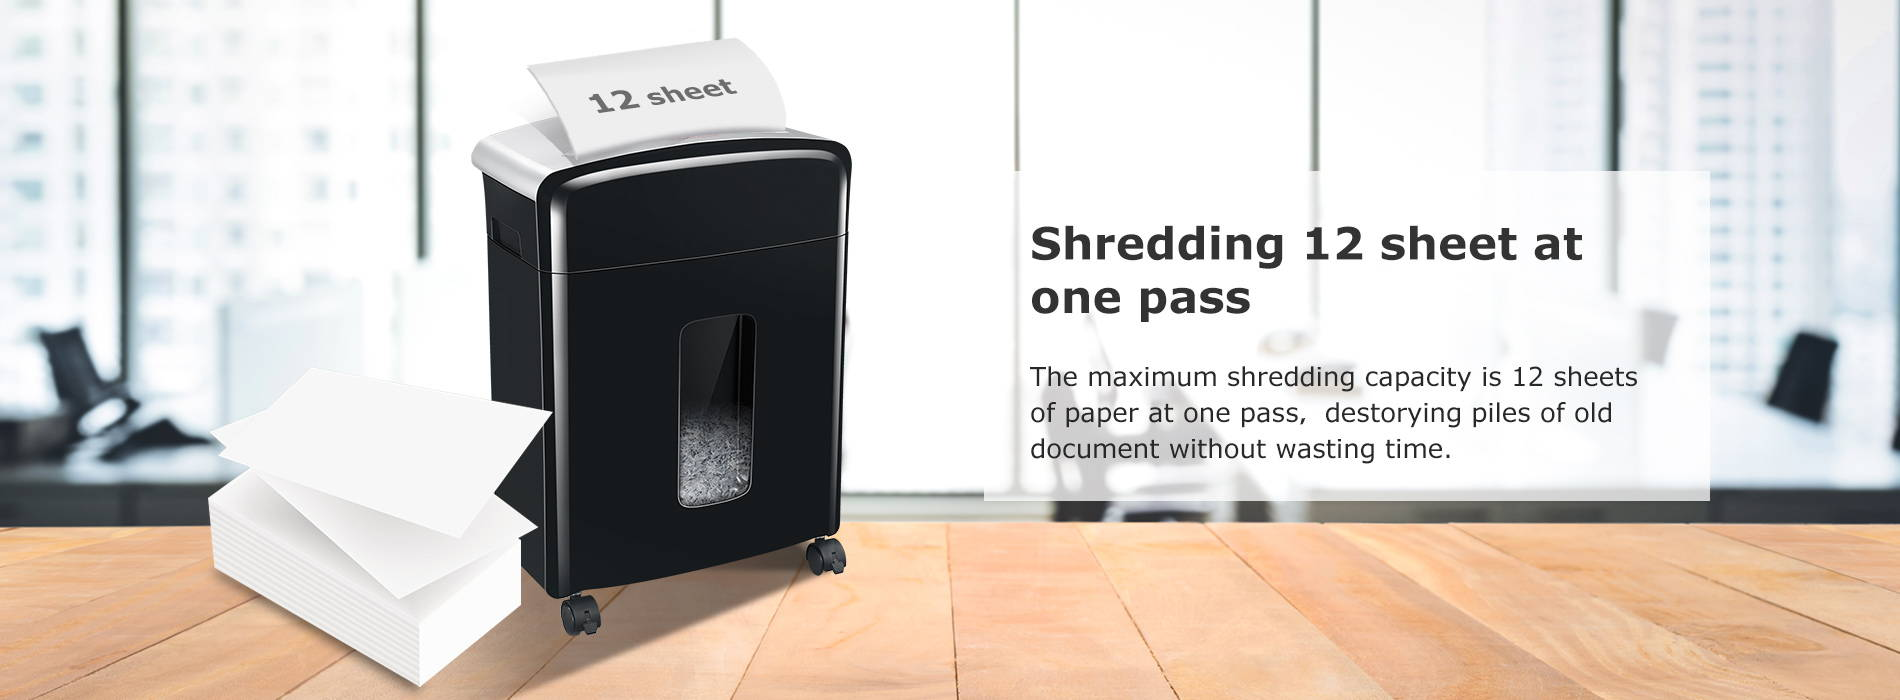 Shredding 12 sheet at one pass The maximum shredding capacity is 12 sheets of paper at one pass,destorying piles of old document without wasting time.